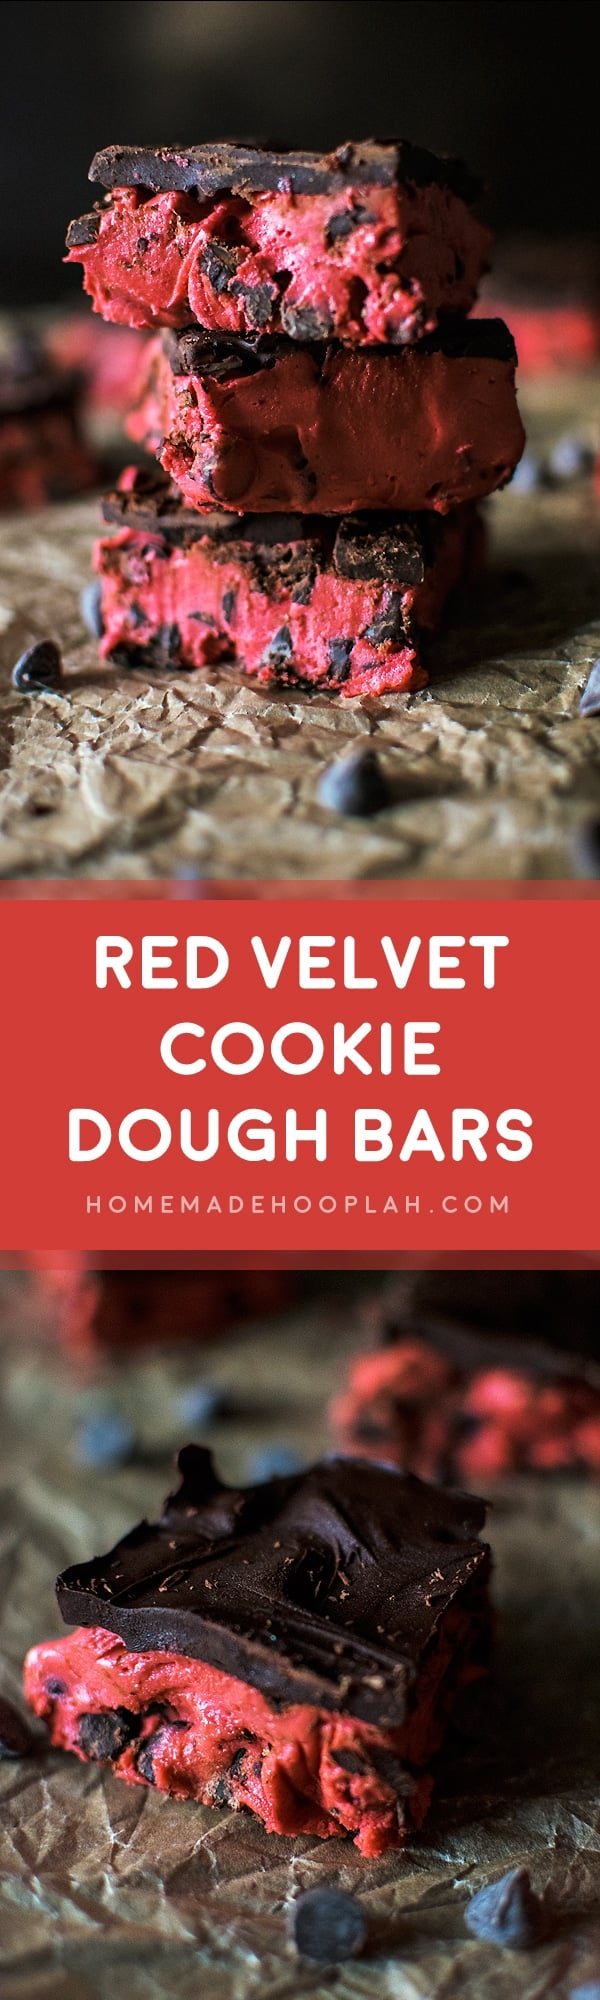 Red Velvet Cookie Dough Bars! Chewy and gooey red velvet cookie dough (eggless and no bake) laced with semi-sweet chocolate chips and covered in a semi-sweet chocolate shell. | HomemadeHooplah.com